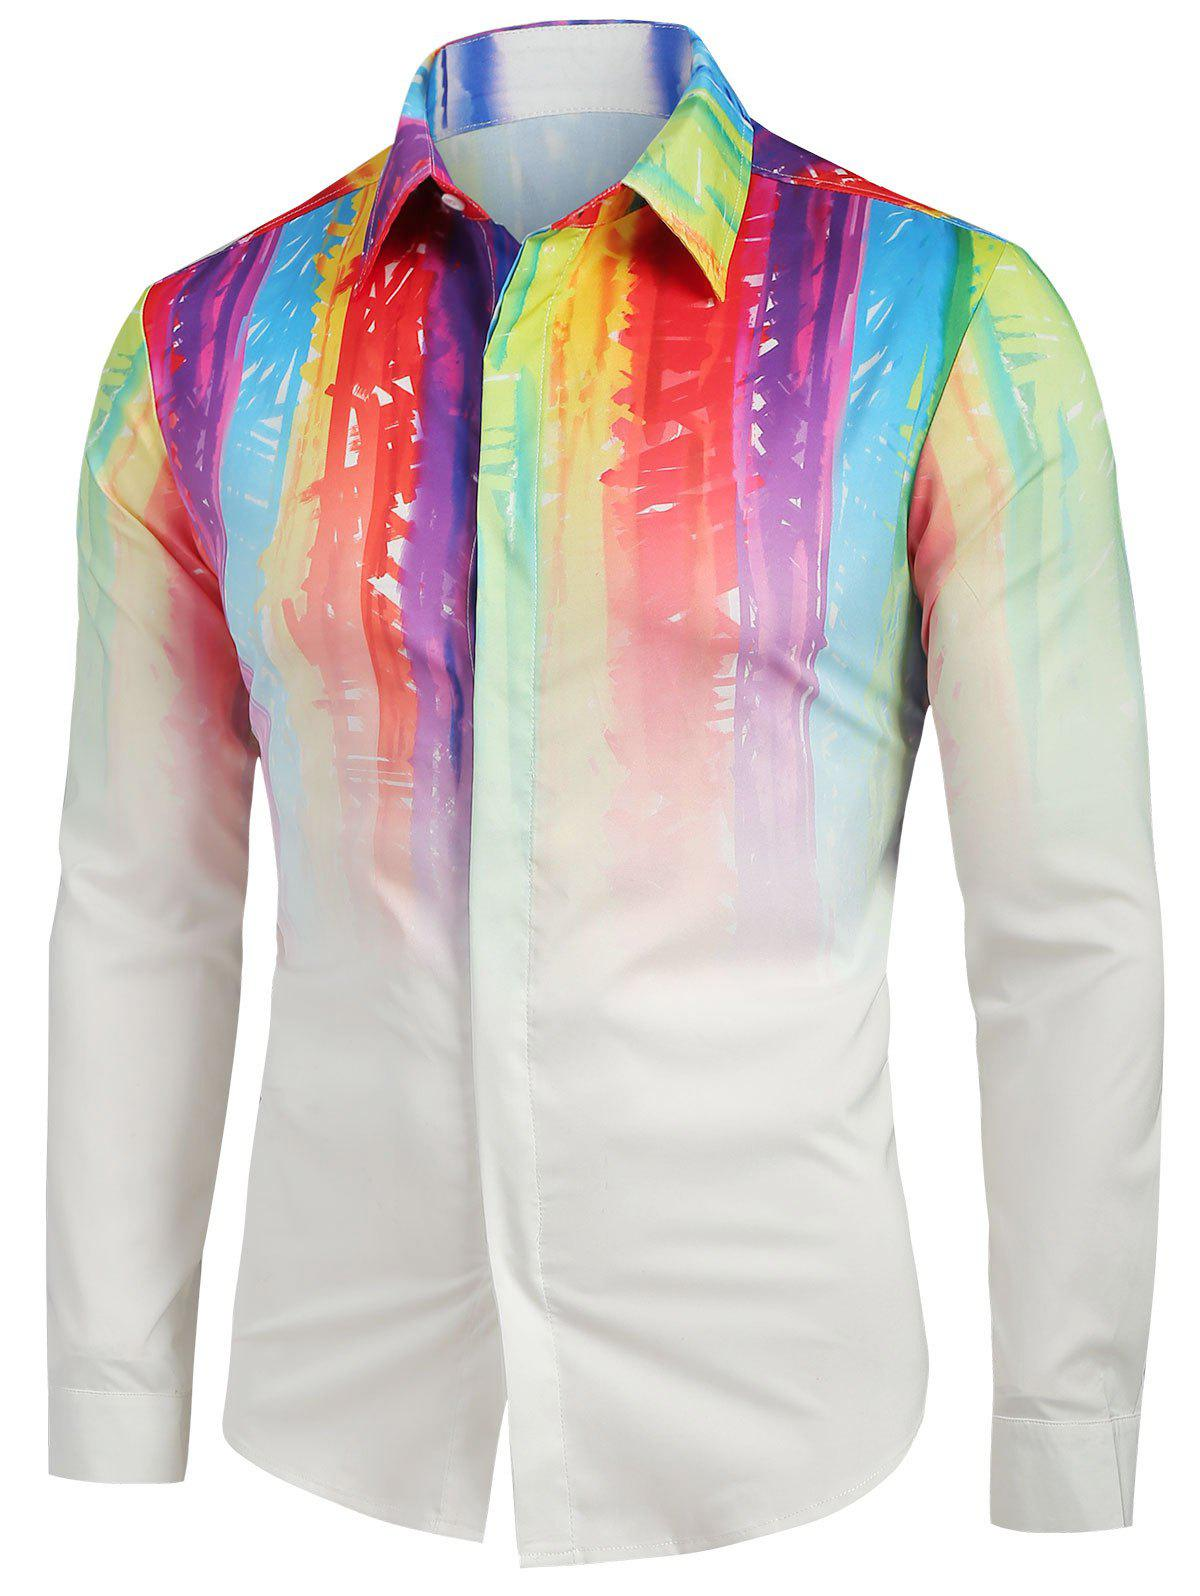 Chic Colorful Ombre Print Long Sleeves Shirt